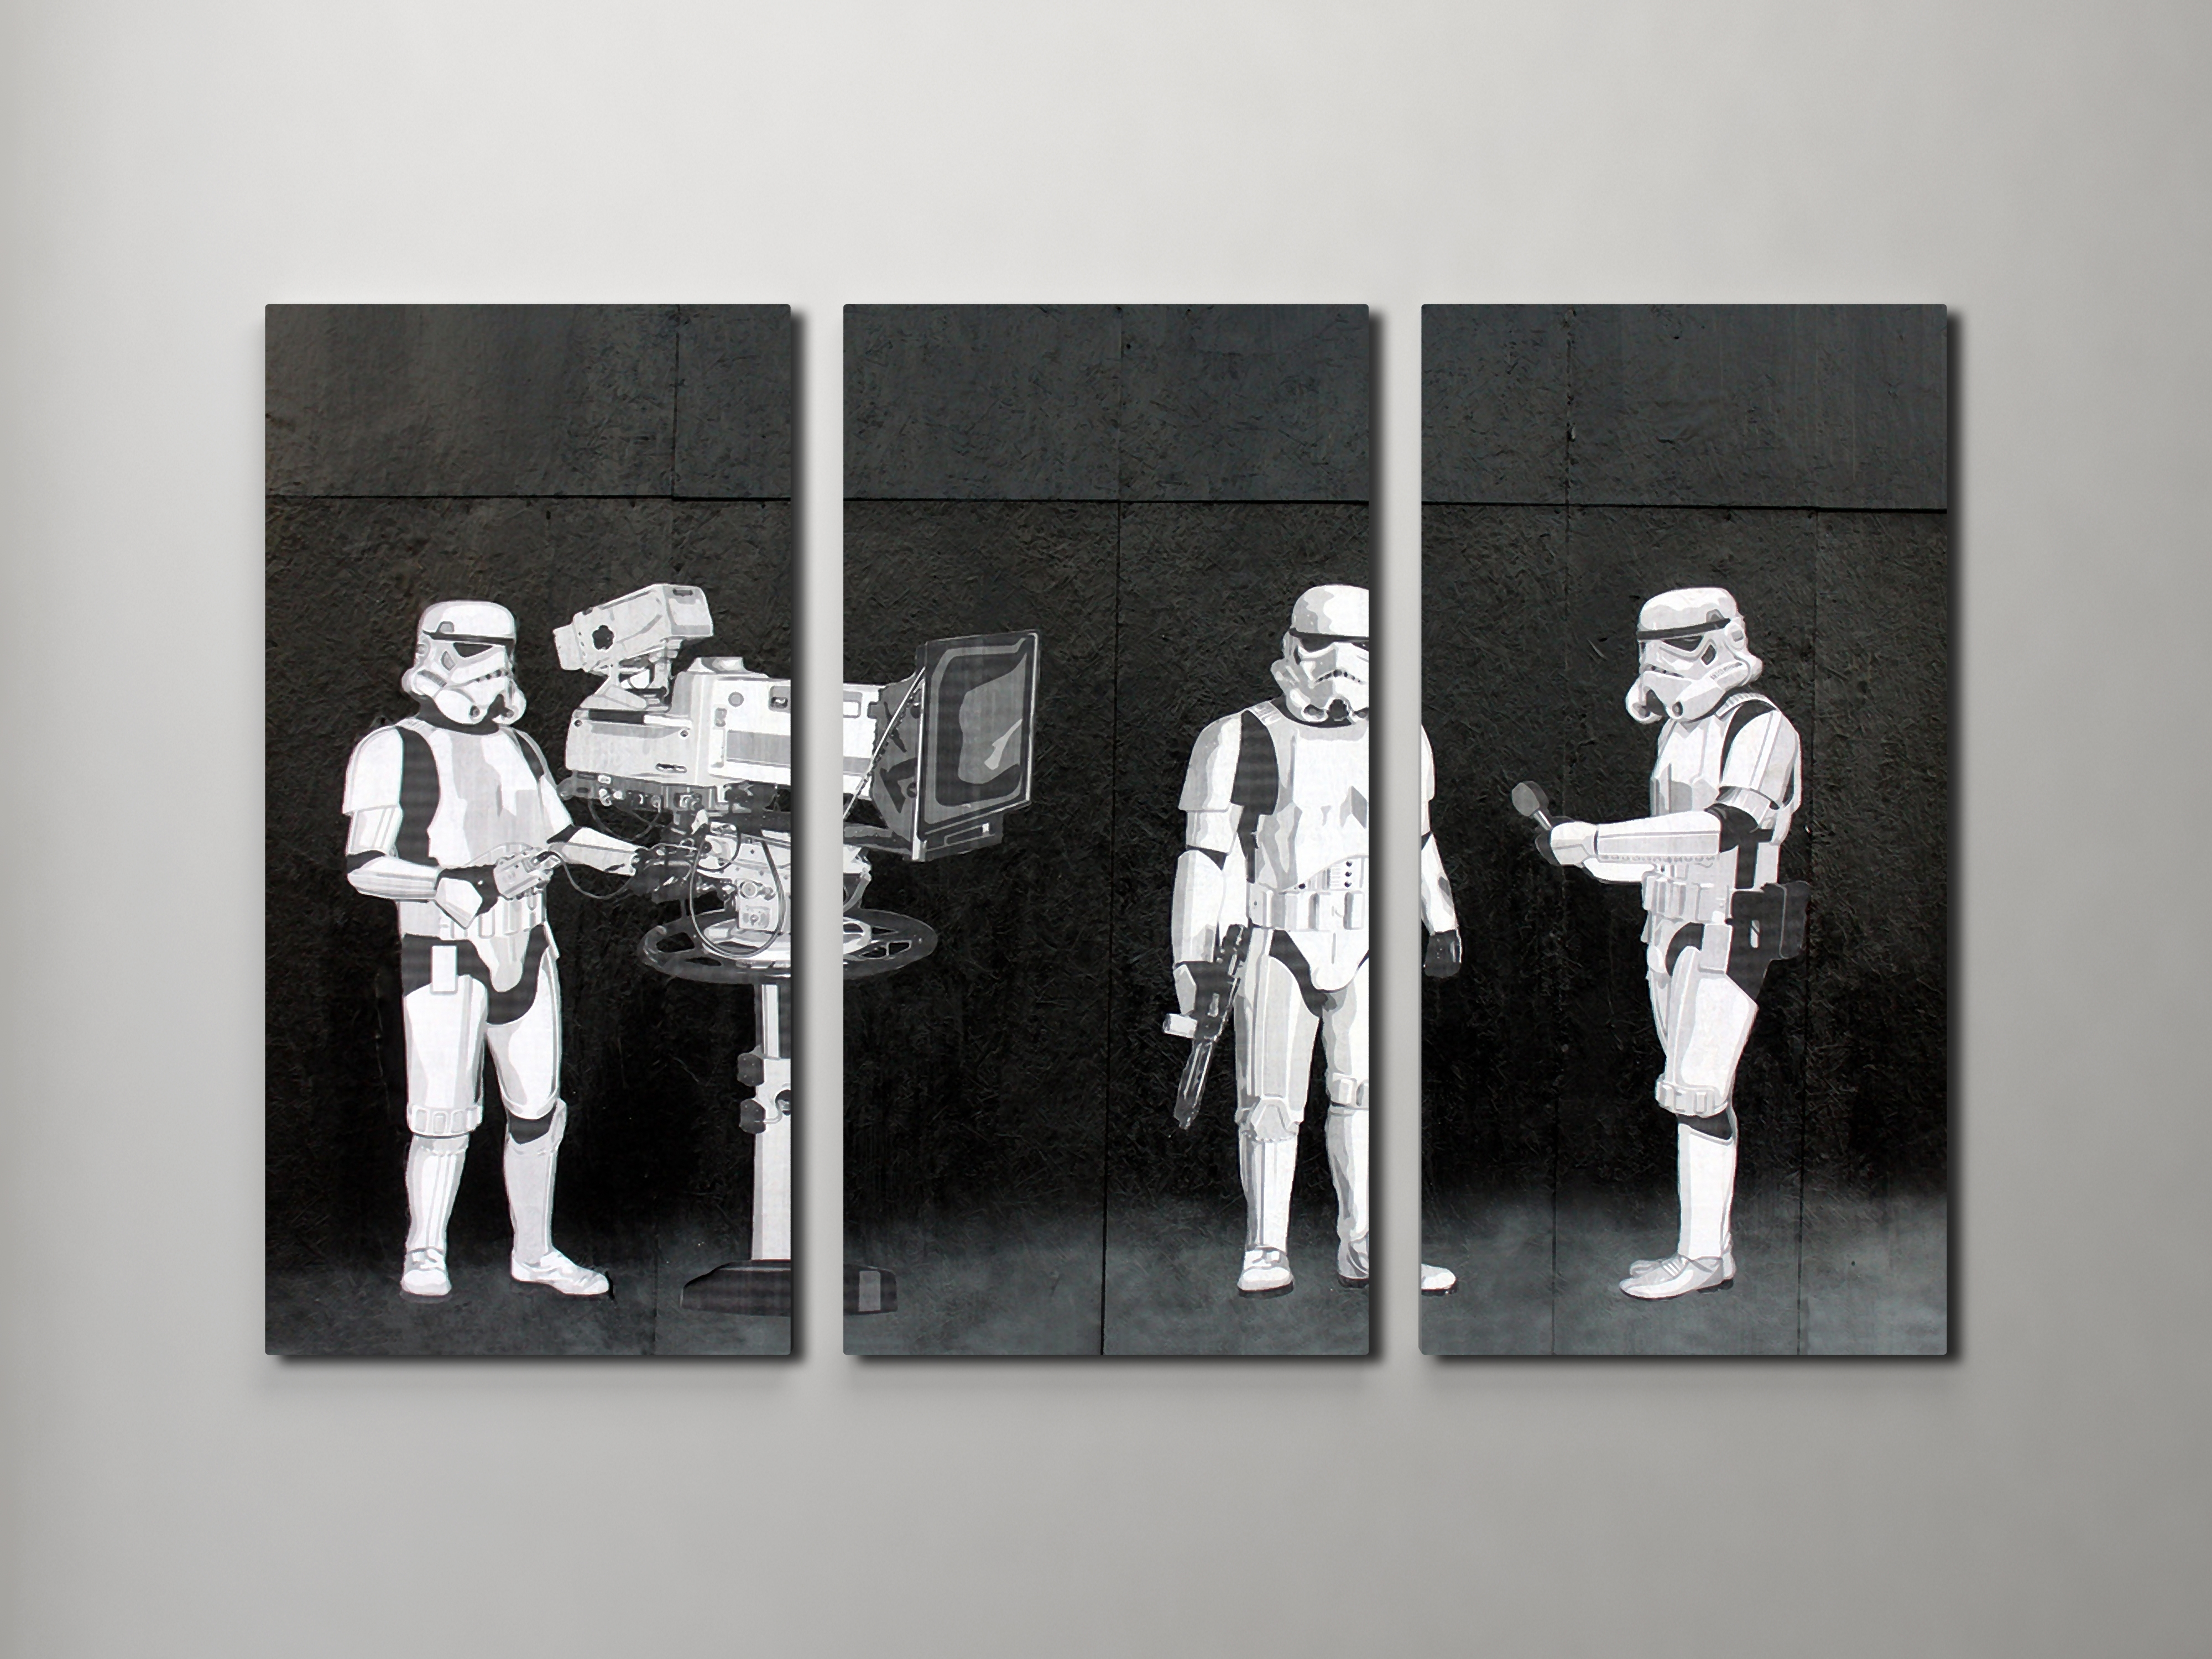 Newest Banksy Stormtroopers Filming Oscars Triptych Canvas Wall Art With Triptych Wall Art (View 9 of 15)